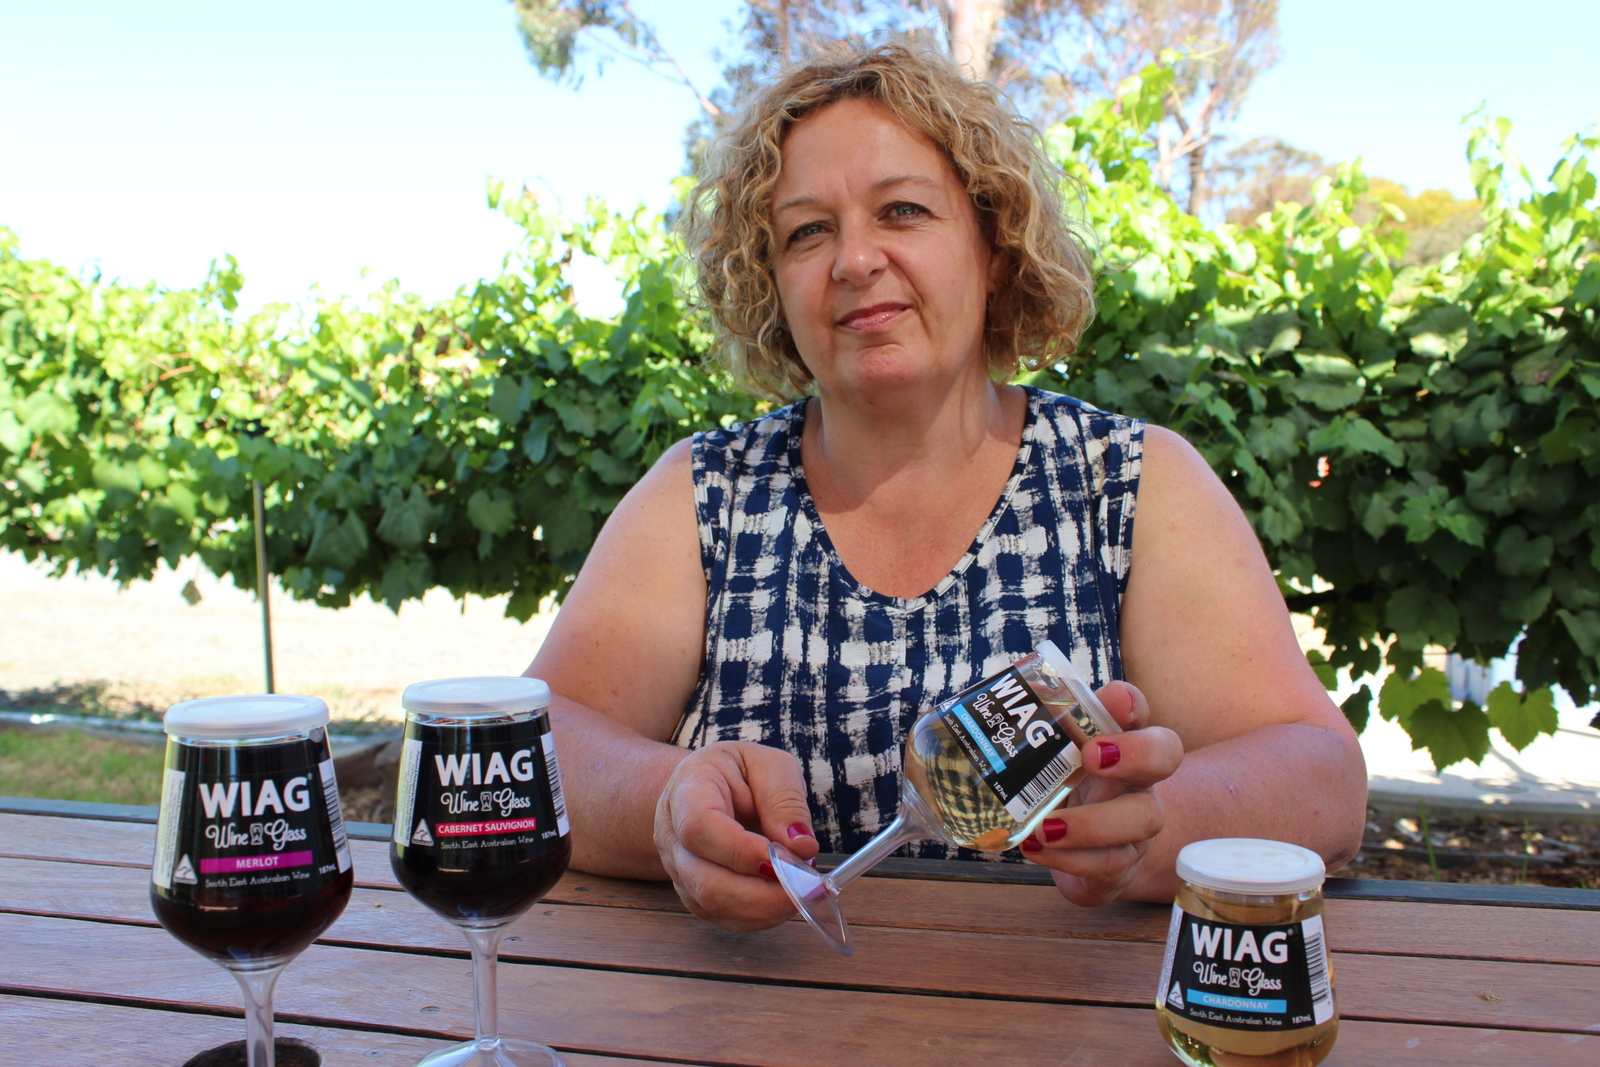 Managing Director of Wine in a Glass, Michelle Anderson-Sims